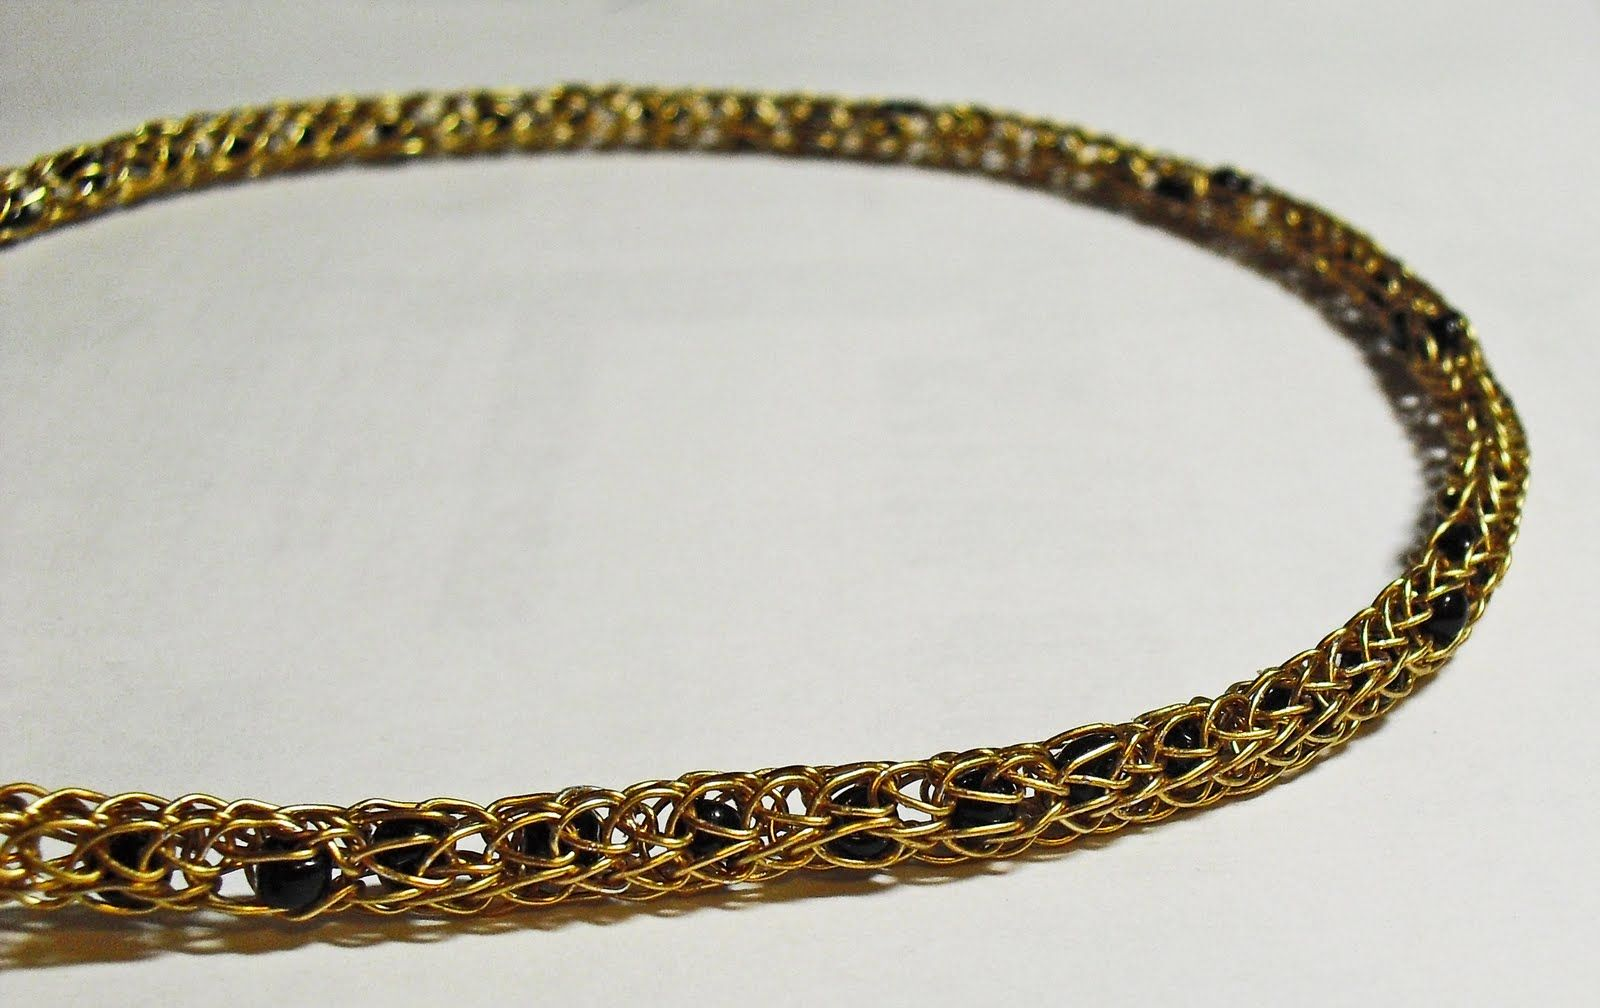 Viking Wire Weaving | Tangible Daydreams: More Viking wire weaving ...